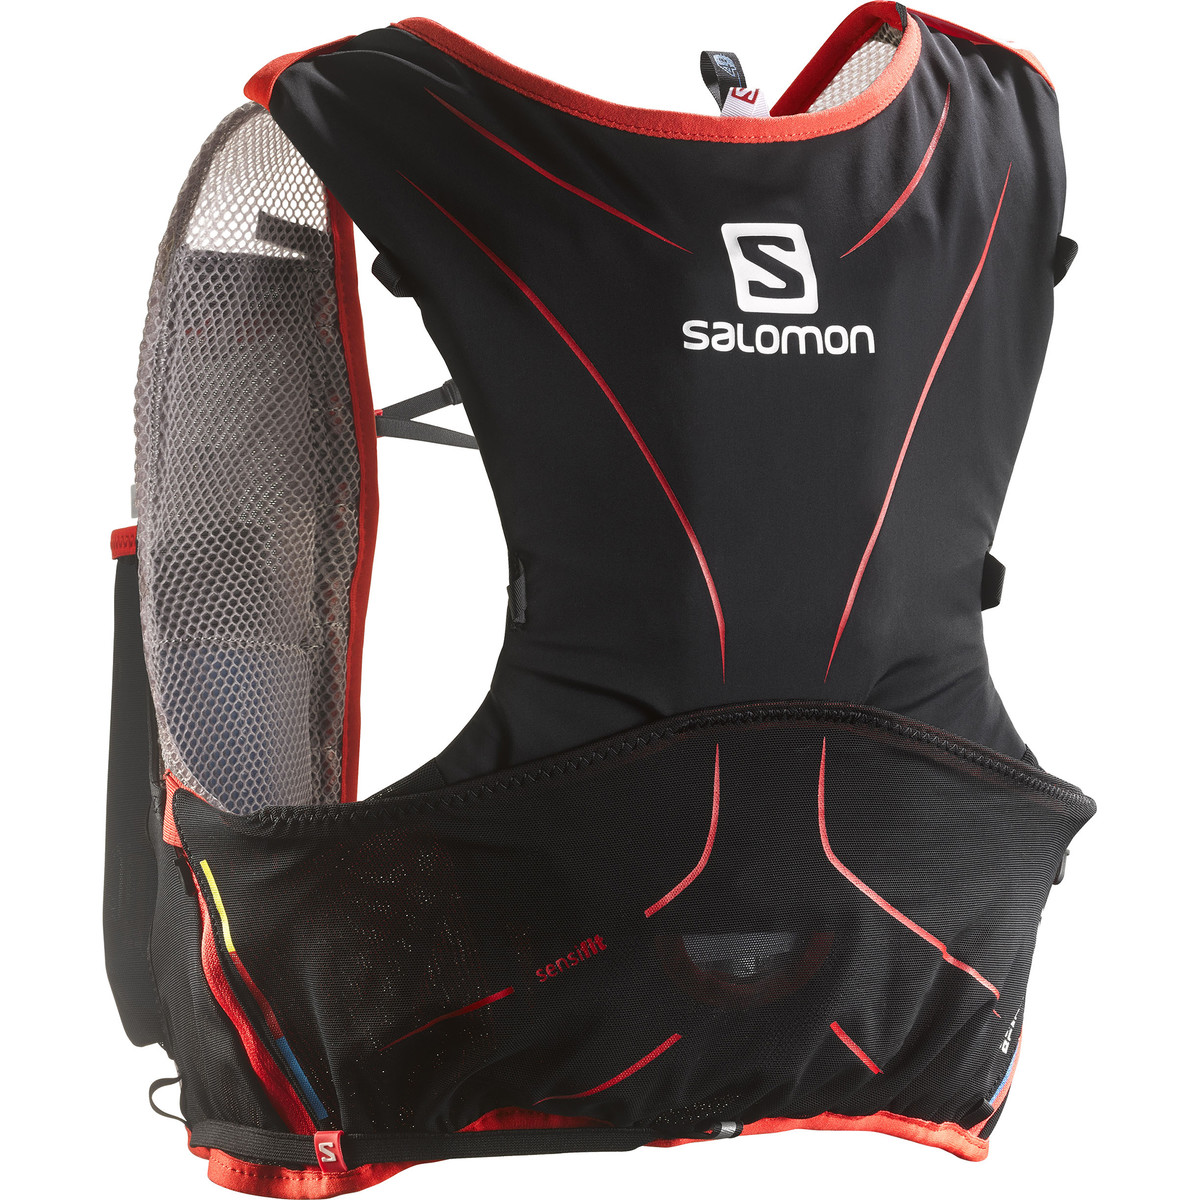 photo: Salomon Advanced Skin S-Lab Hydro 5 hydration pack